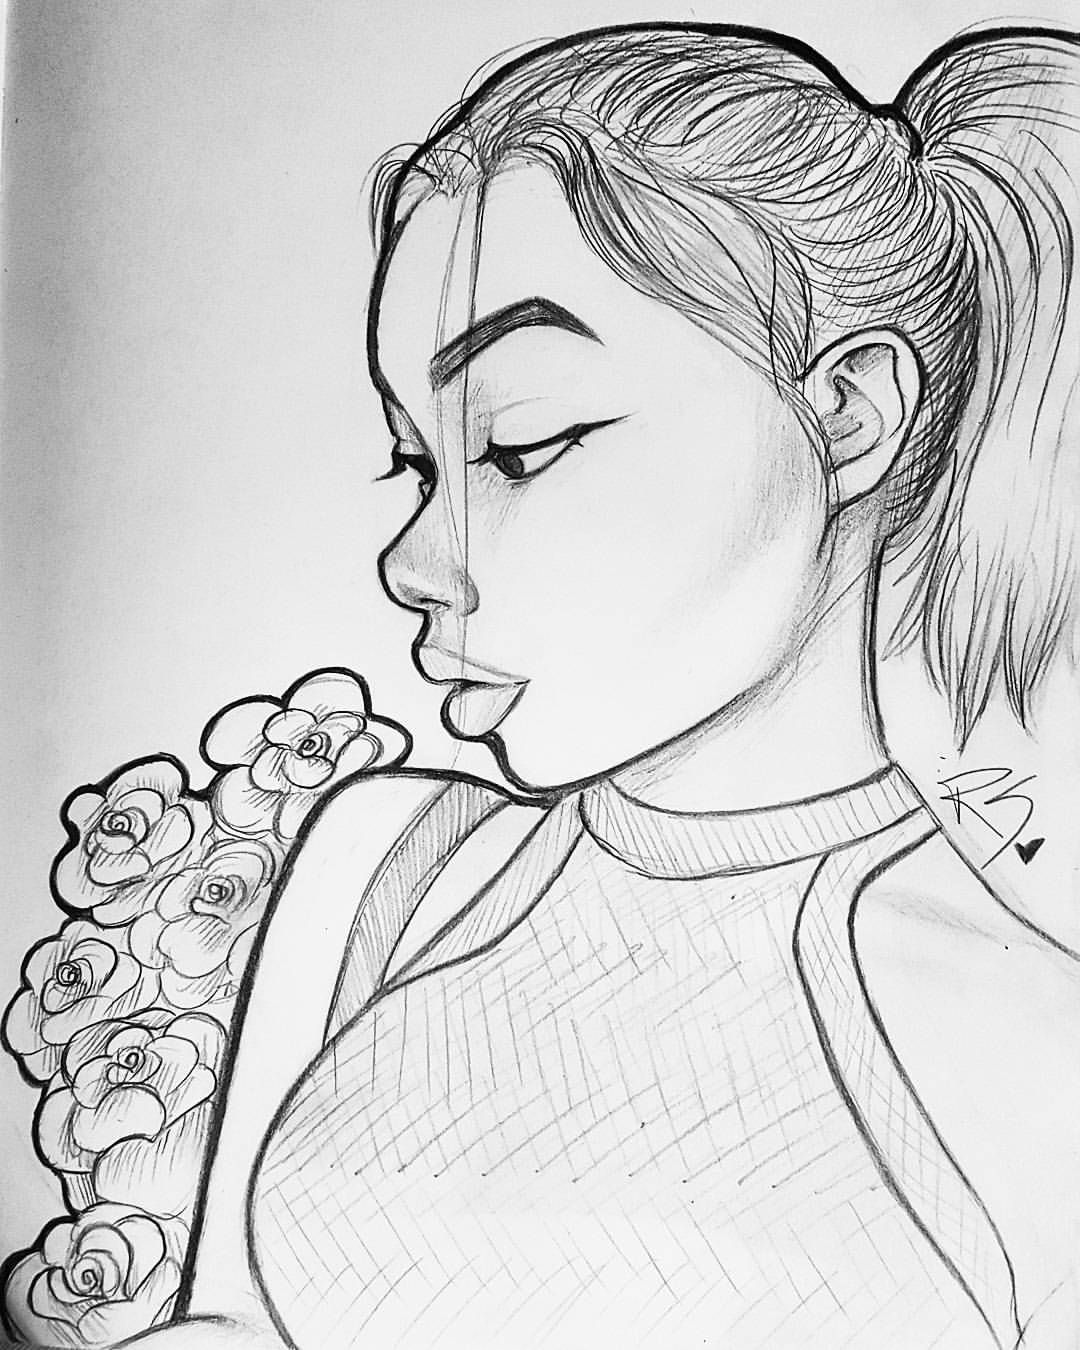 cute tumblr coloring pages cute vsco coloring pages en 2020 universo dibujo cute coloring pages tumblr